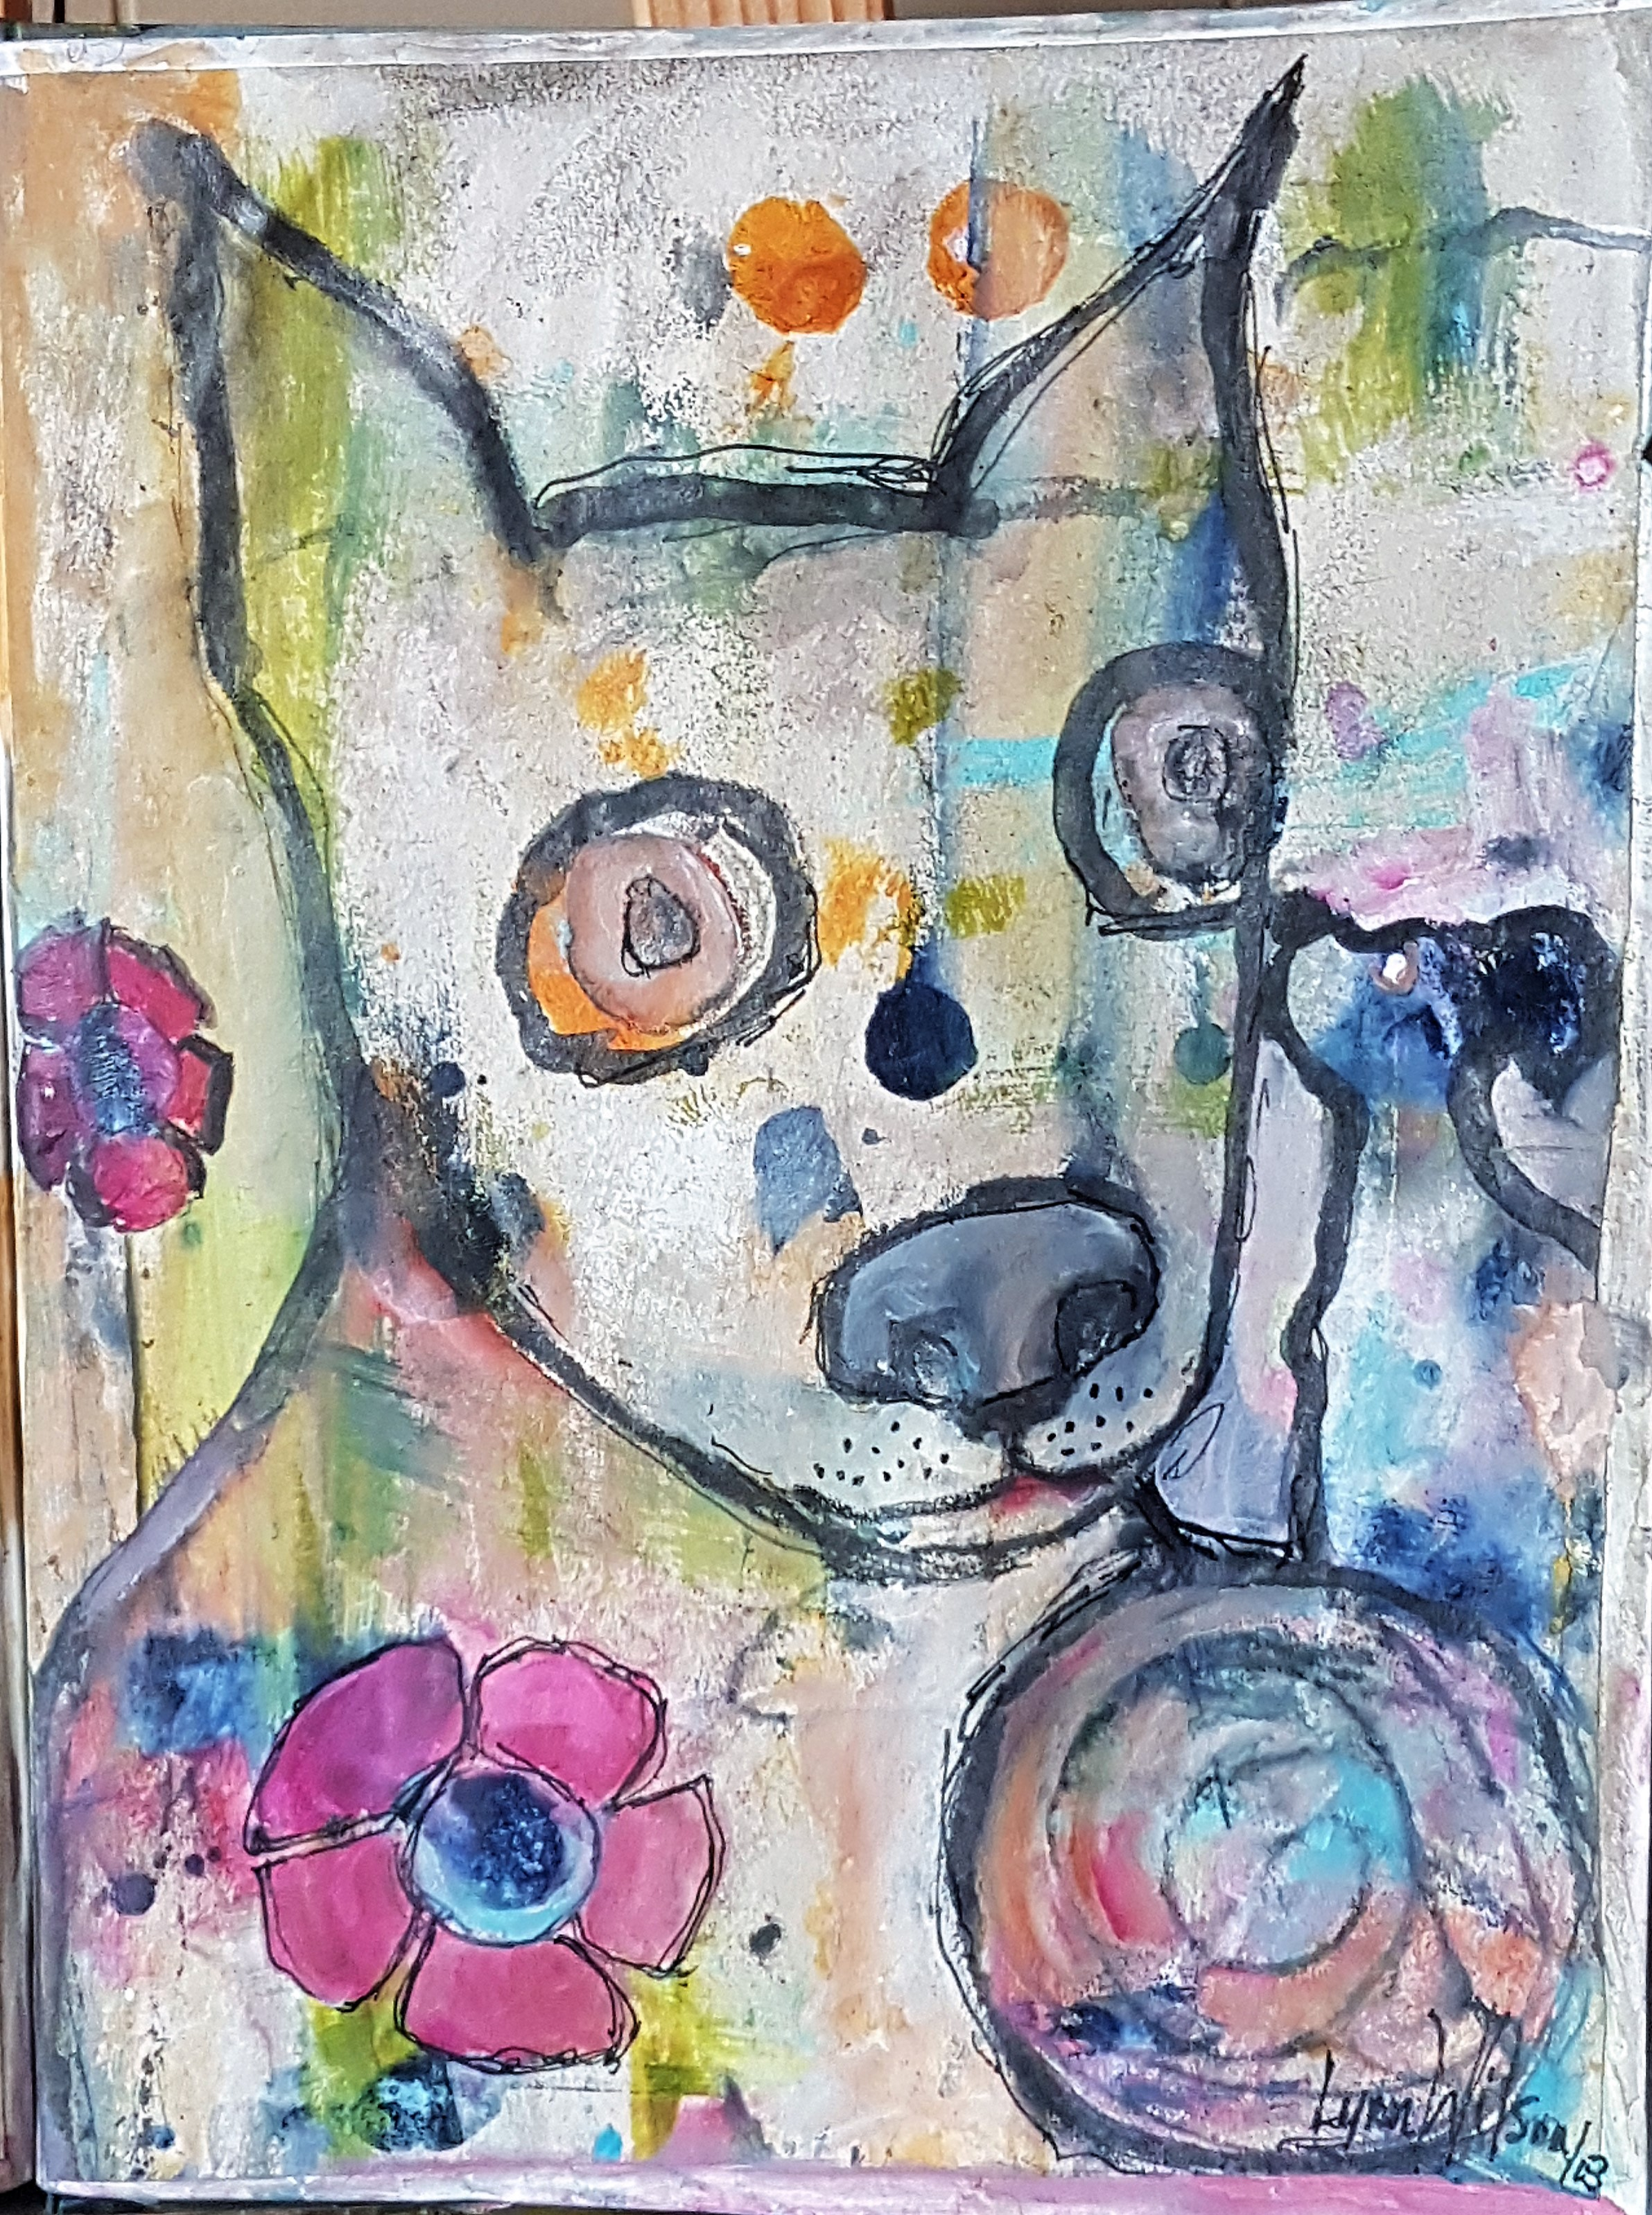 lynn wilson - Journal 00th page BIG AND LITTLE DOGS .jpg